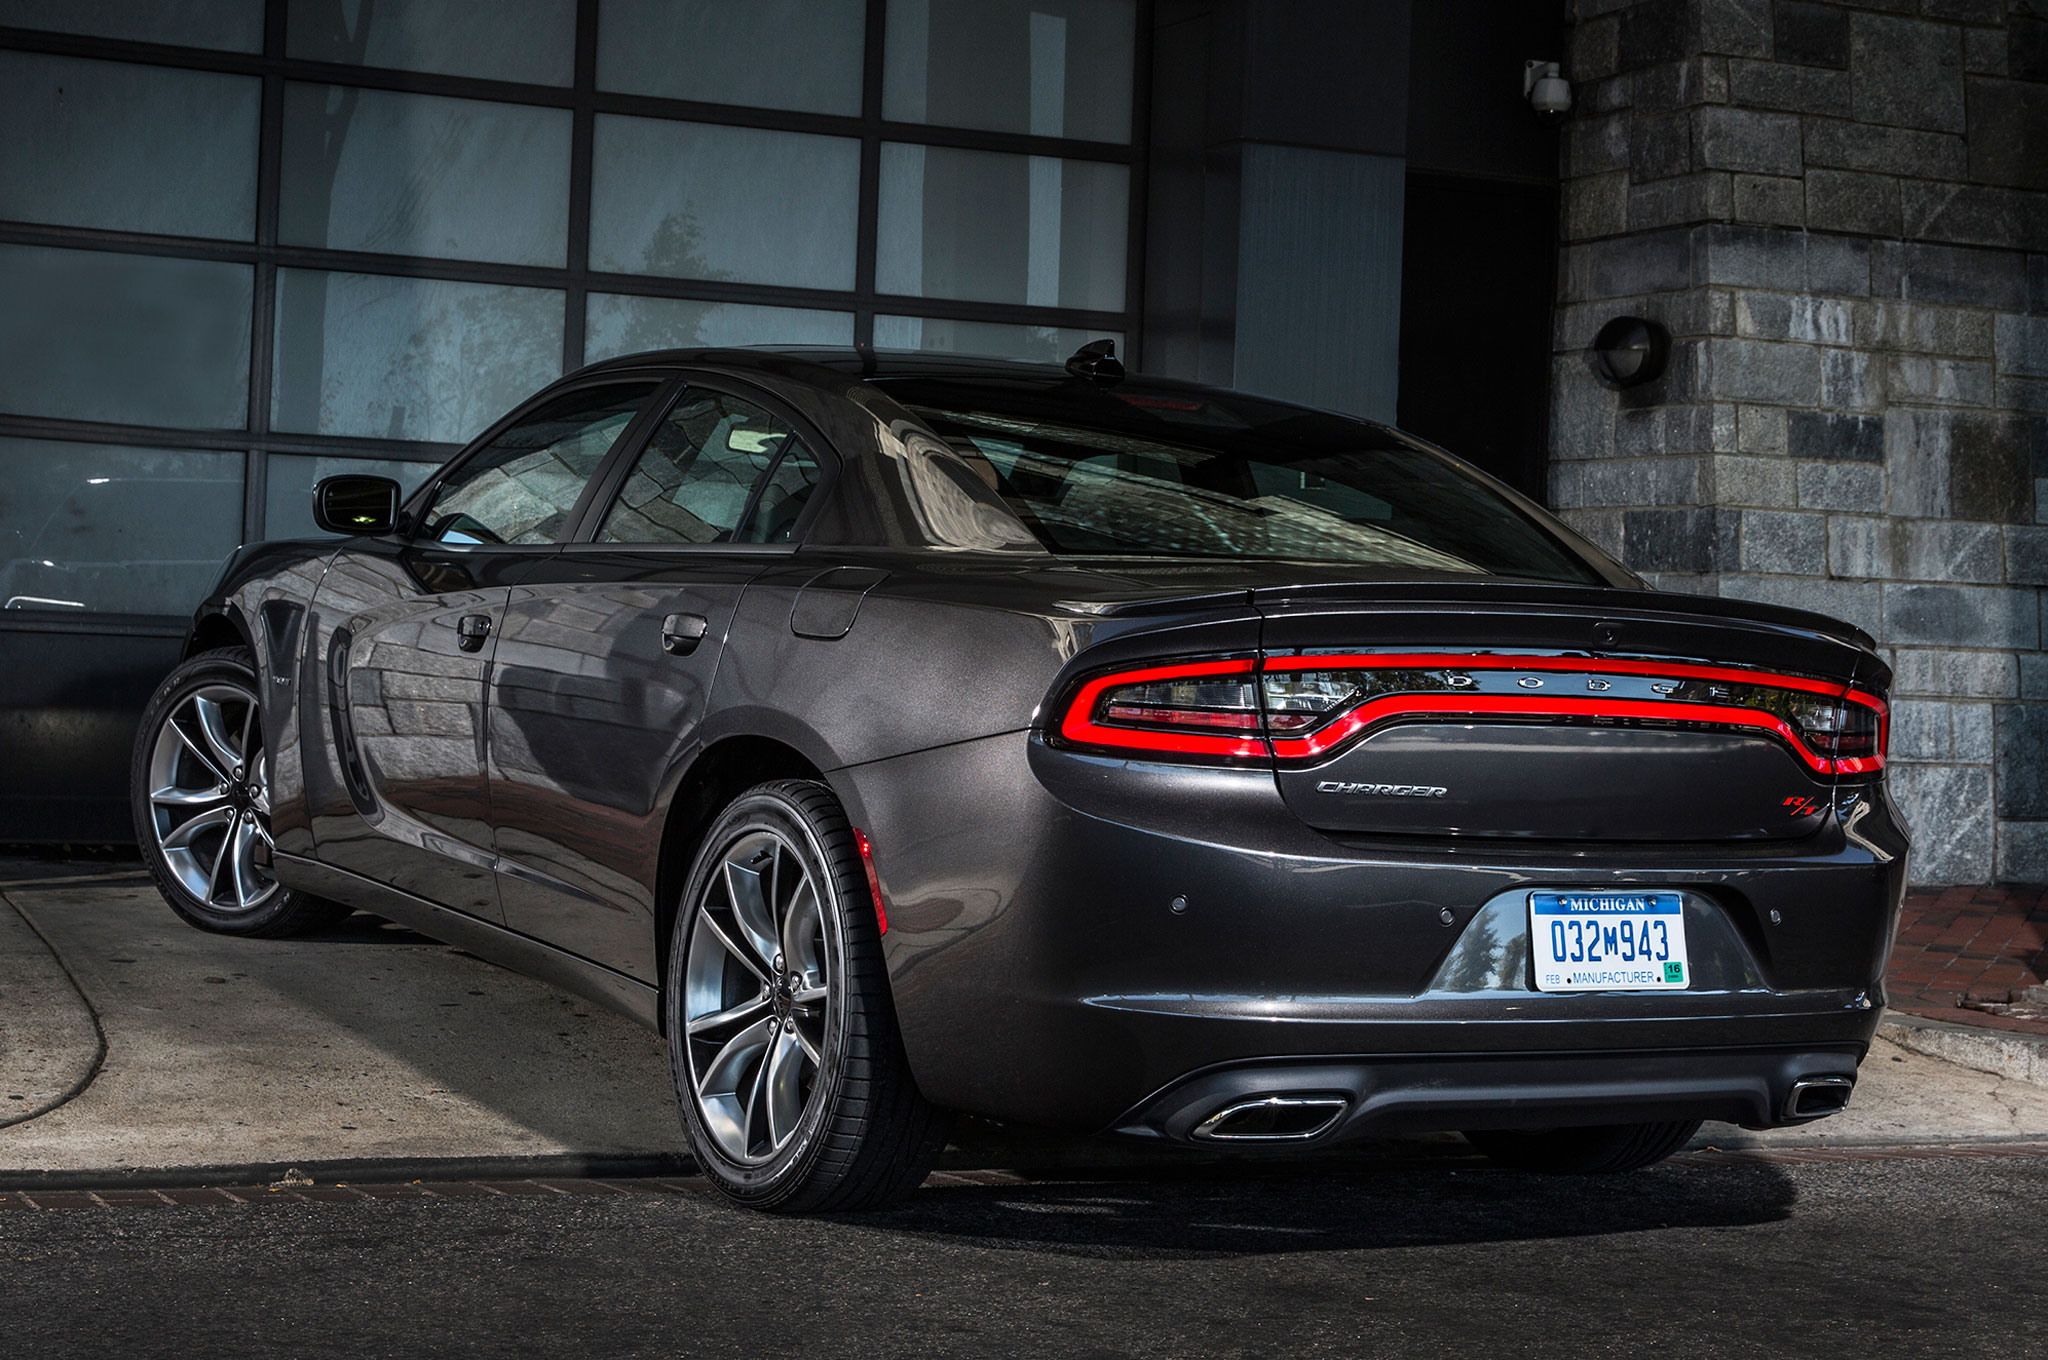 2015 Dodge Charger #21